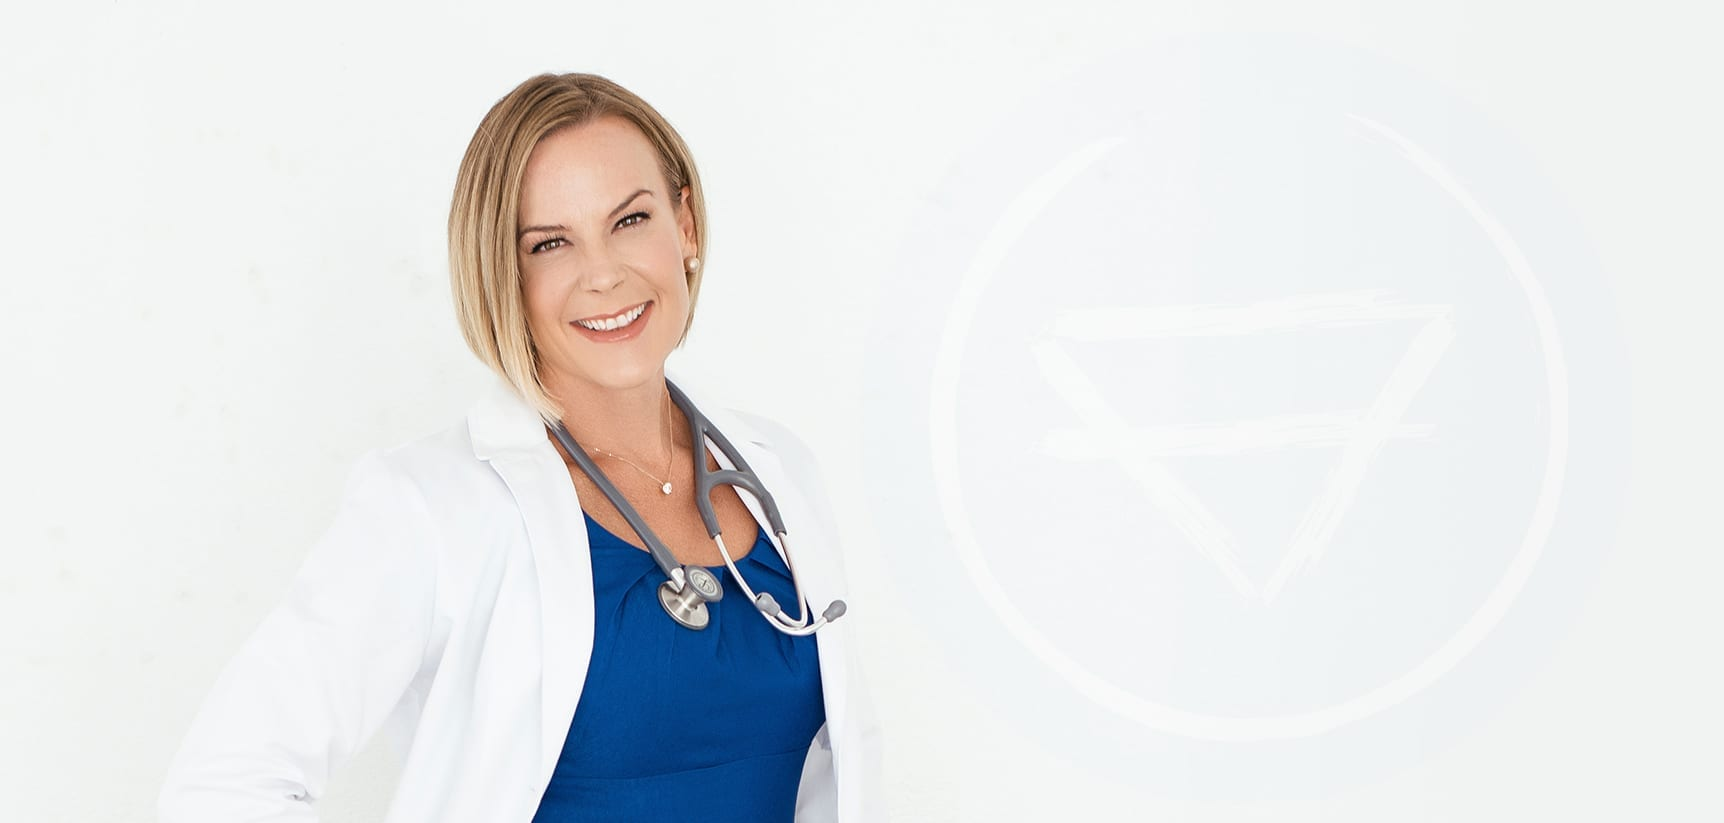 Learn more about Dr. Courtney Cronin, her courses, her practice, and her passion for helping others.